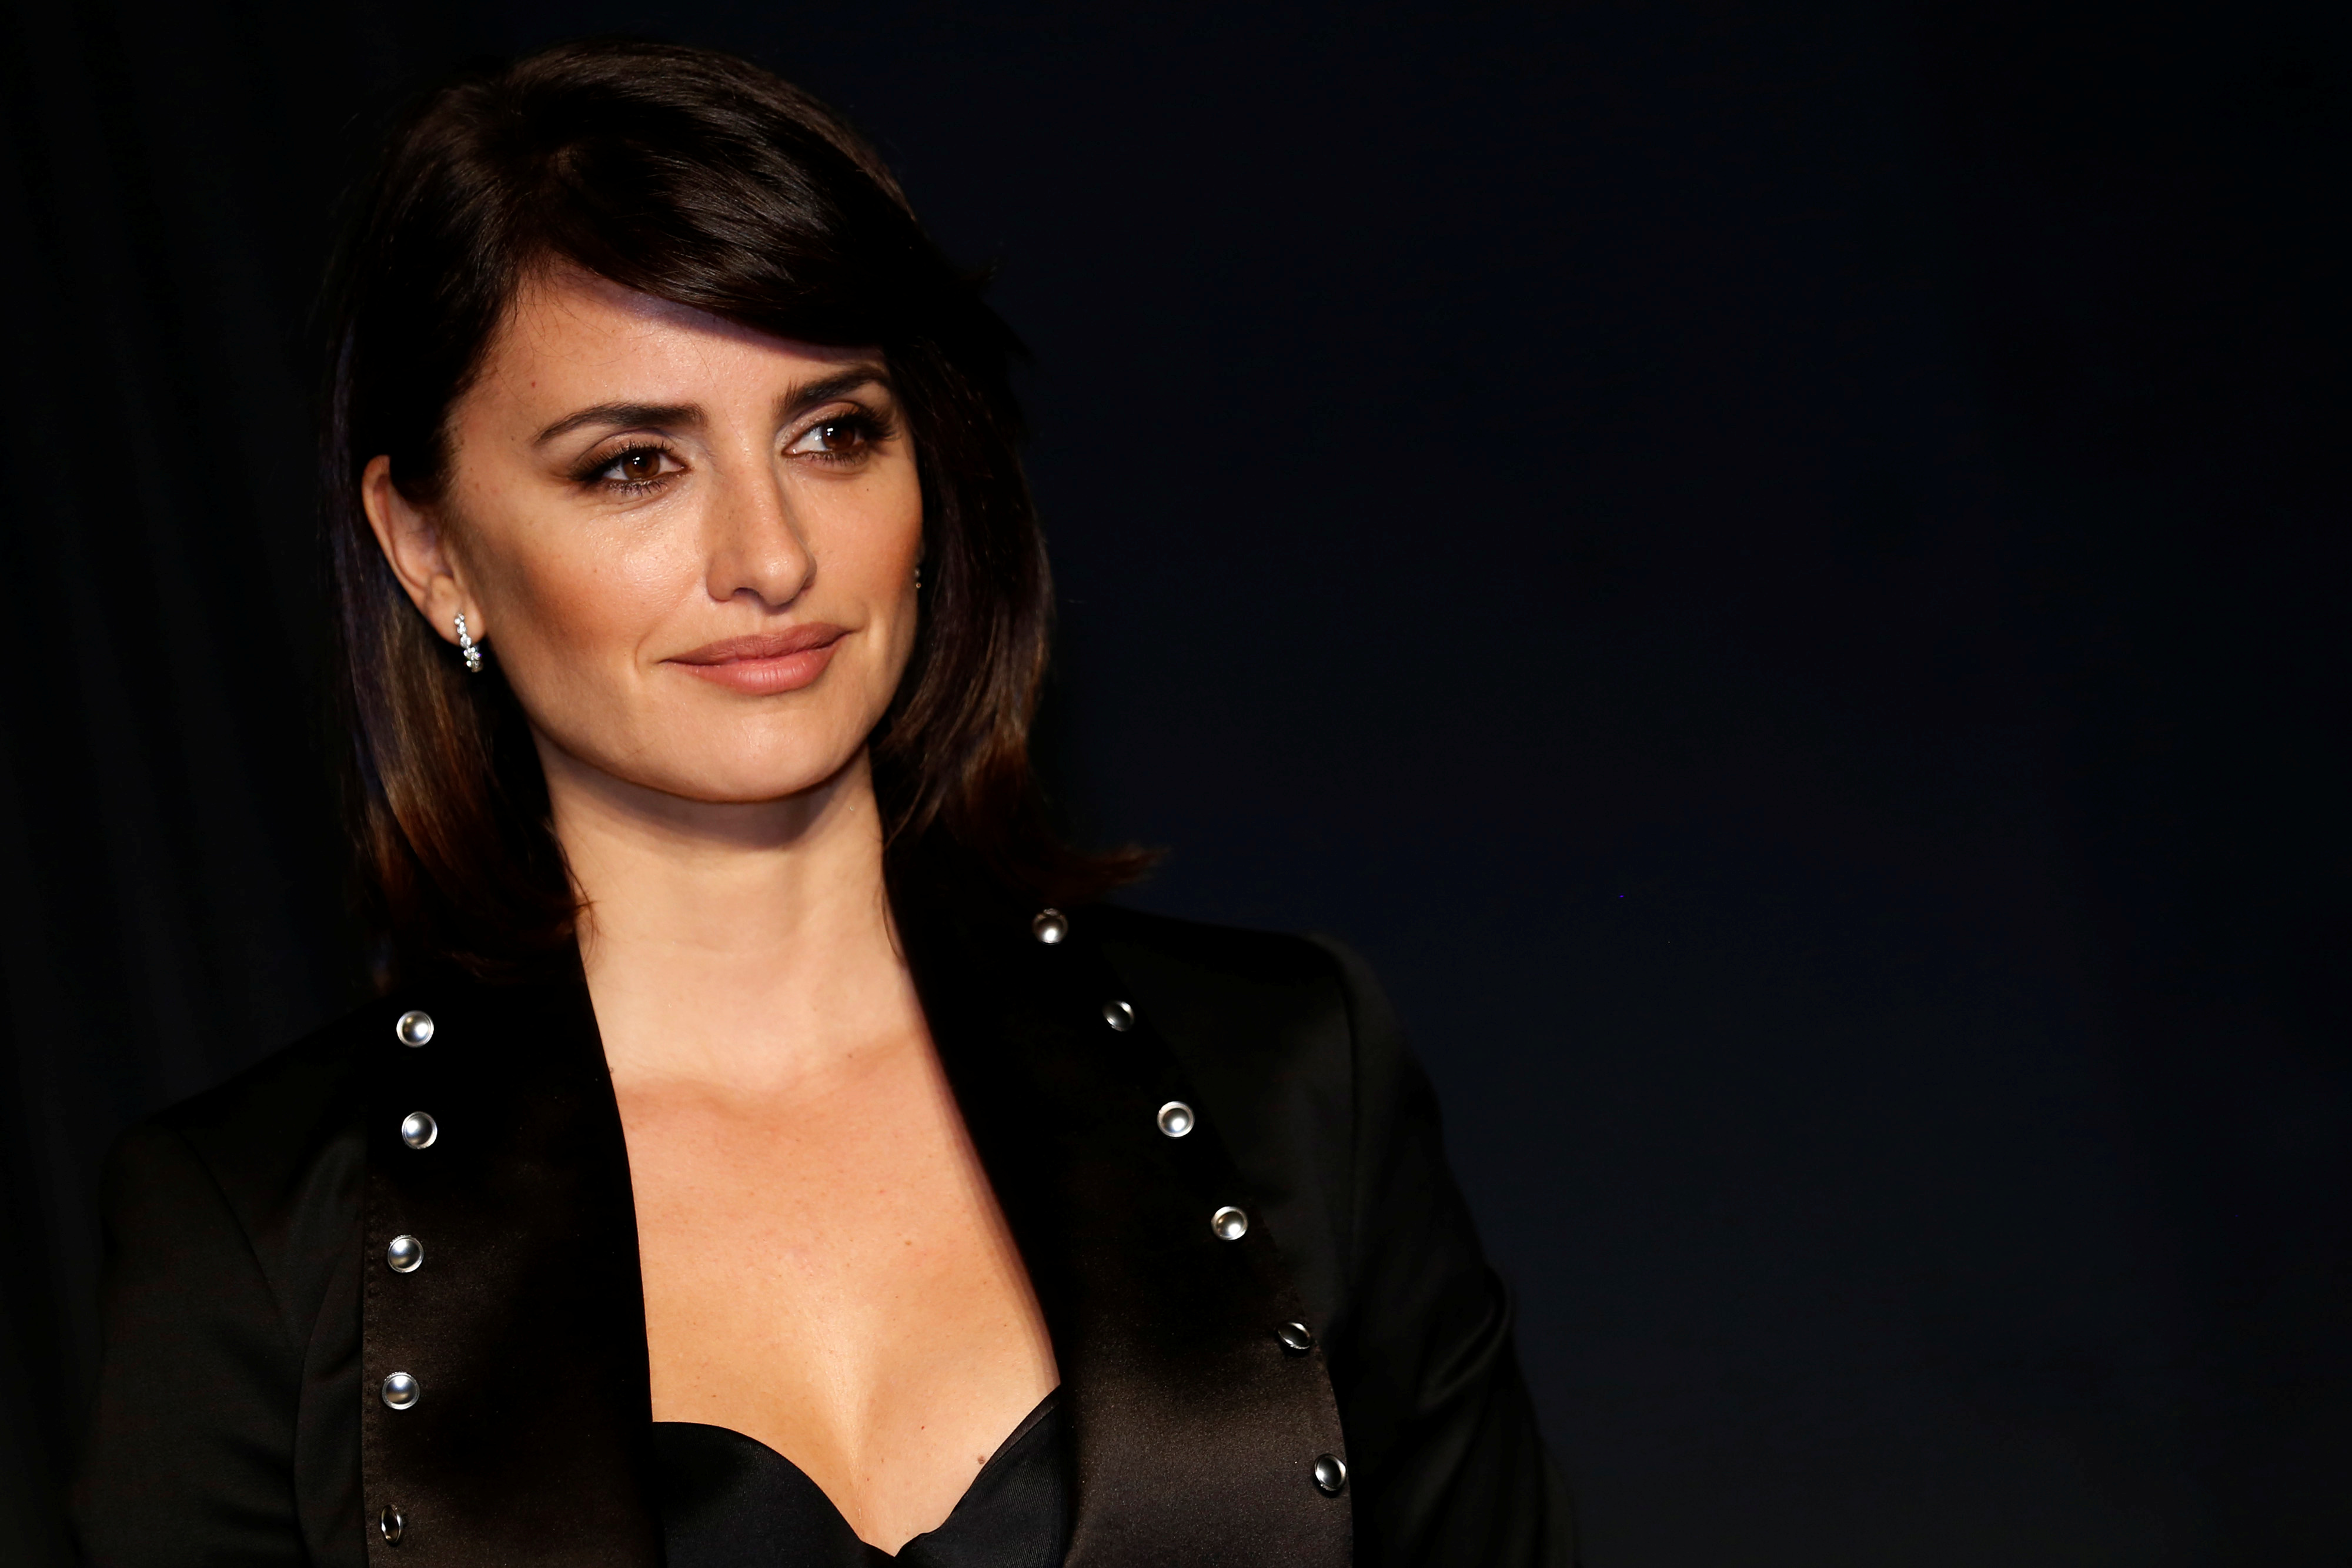 Penelope Cruz arrives for the Burberry catwalk show at London Fashion Week in London, Britain, February 20, 2017. REUTERS/Luke MacGregor - RTSZJCY